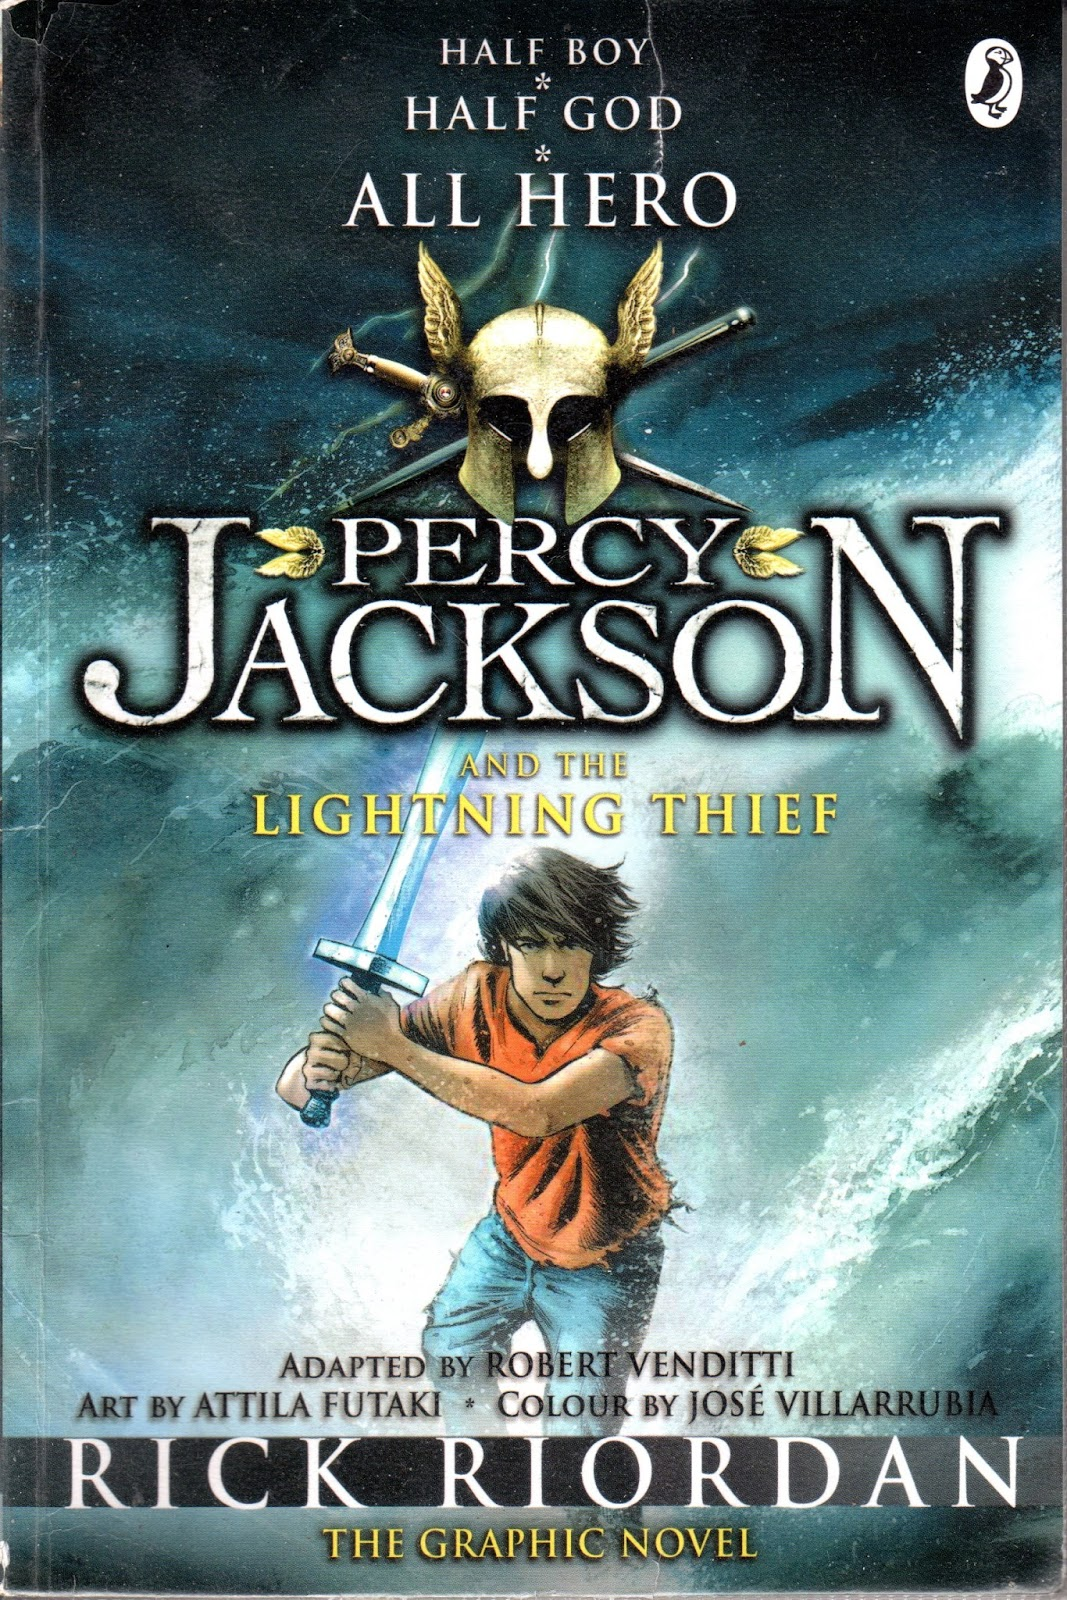 Elementaread: REVIEW 'Percy Jackson and the Lightning Thief' Graphic